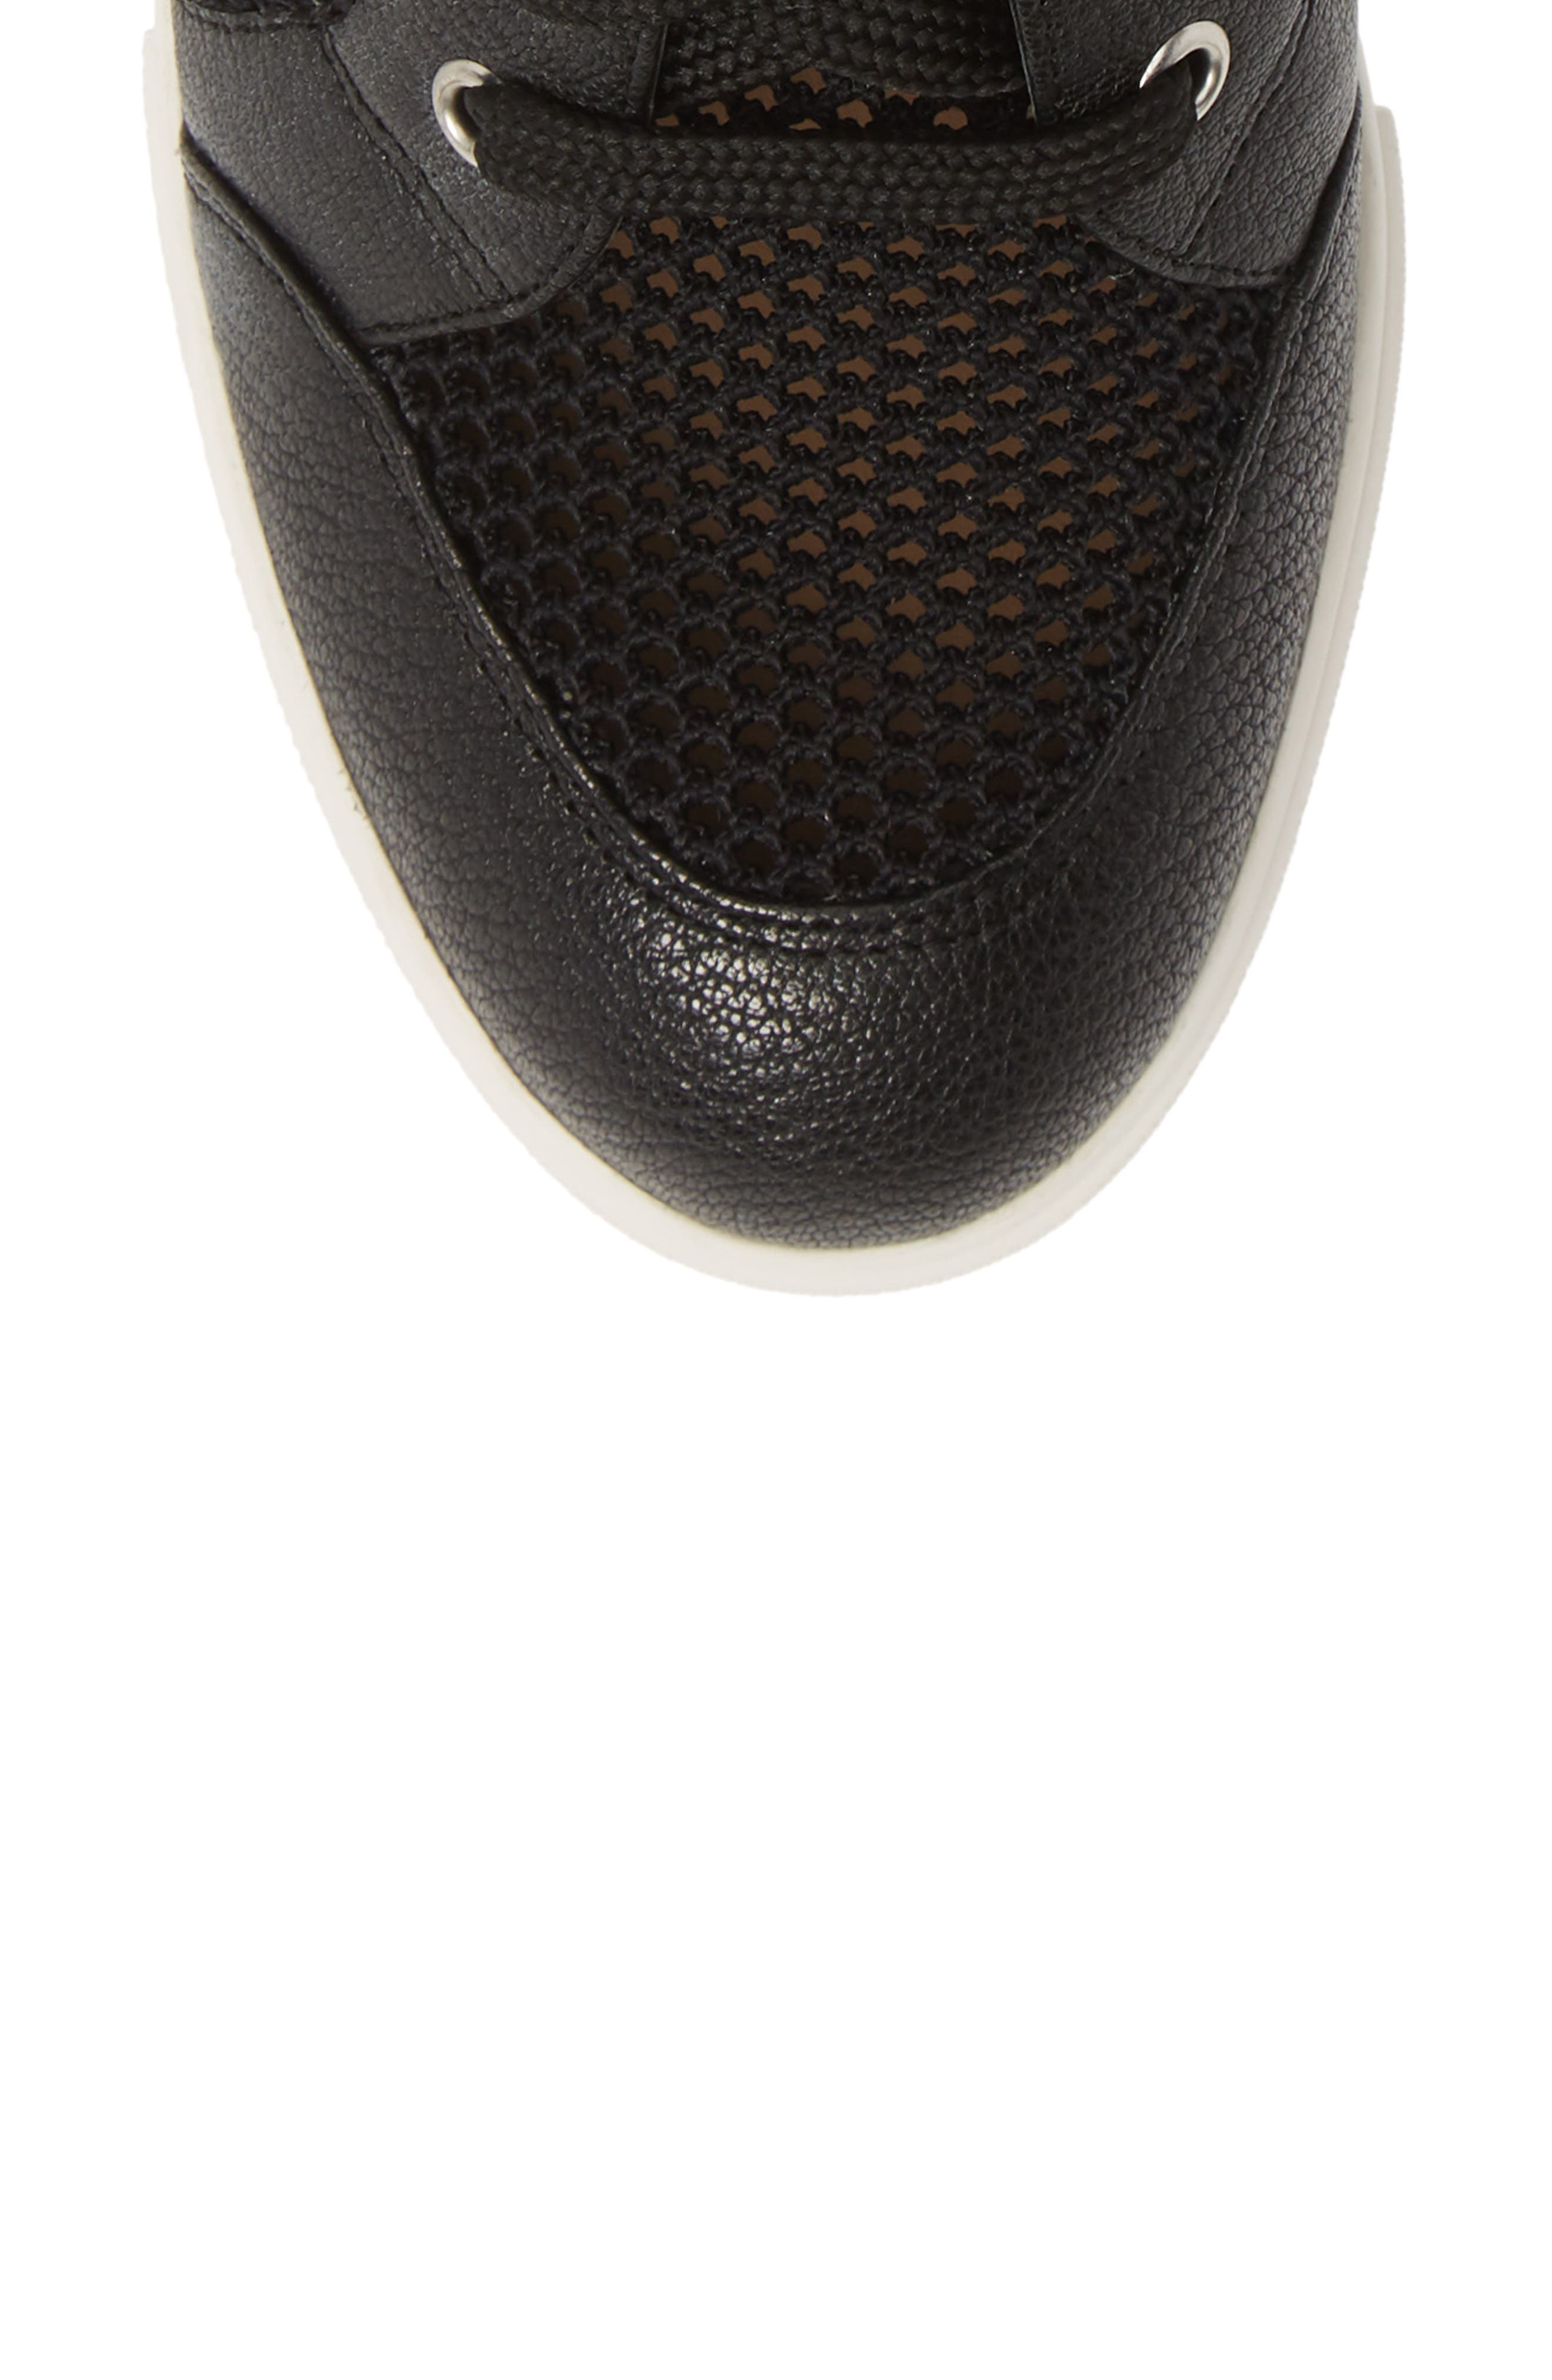 LINEA PAOLO, Finian Mesh Wedge Sneaker Bootie, Alternate thumbnail 5, color, BLACK LEATHER